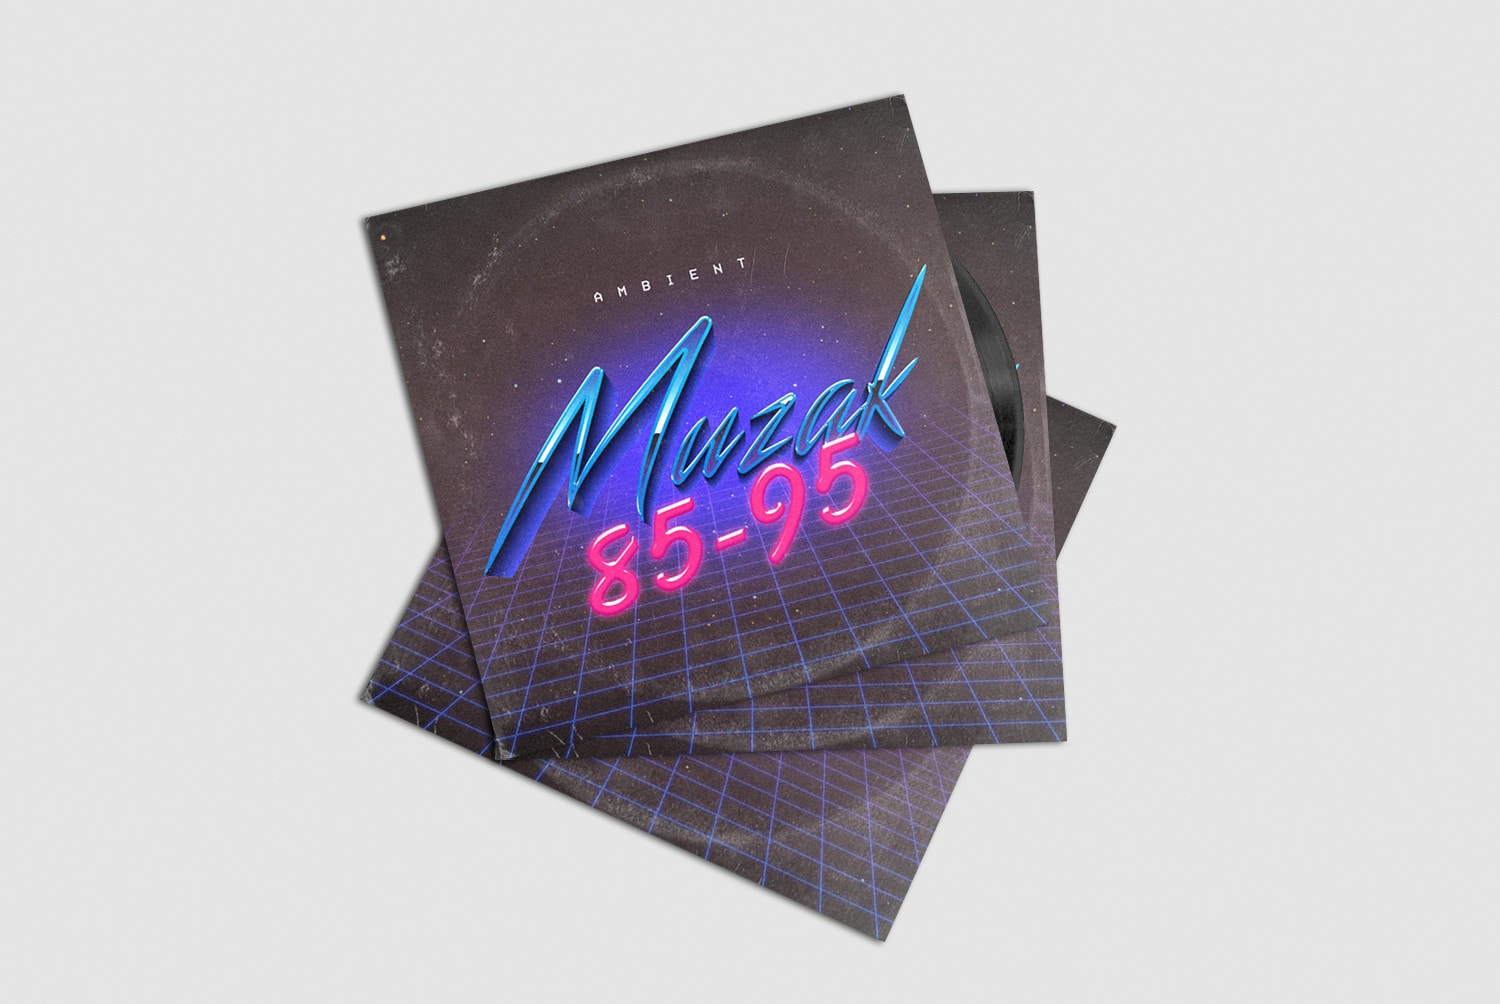 Free Vintage Vinyl Record Psd Mockup Hipsthetic